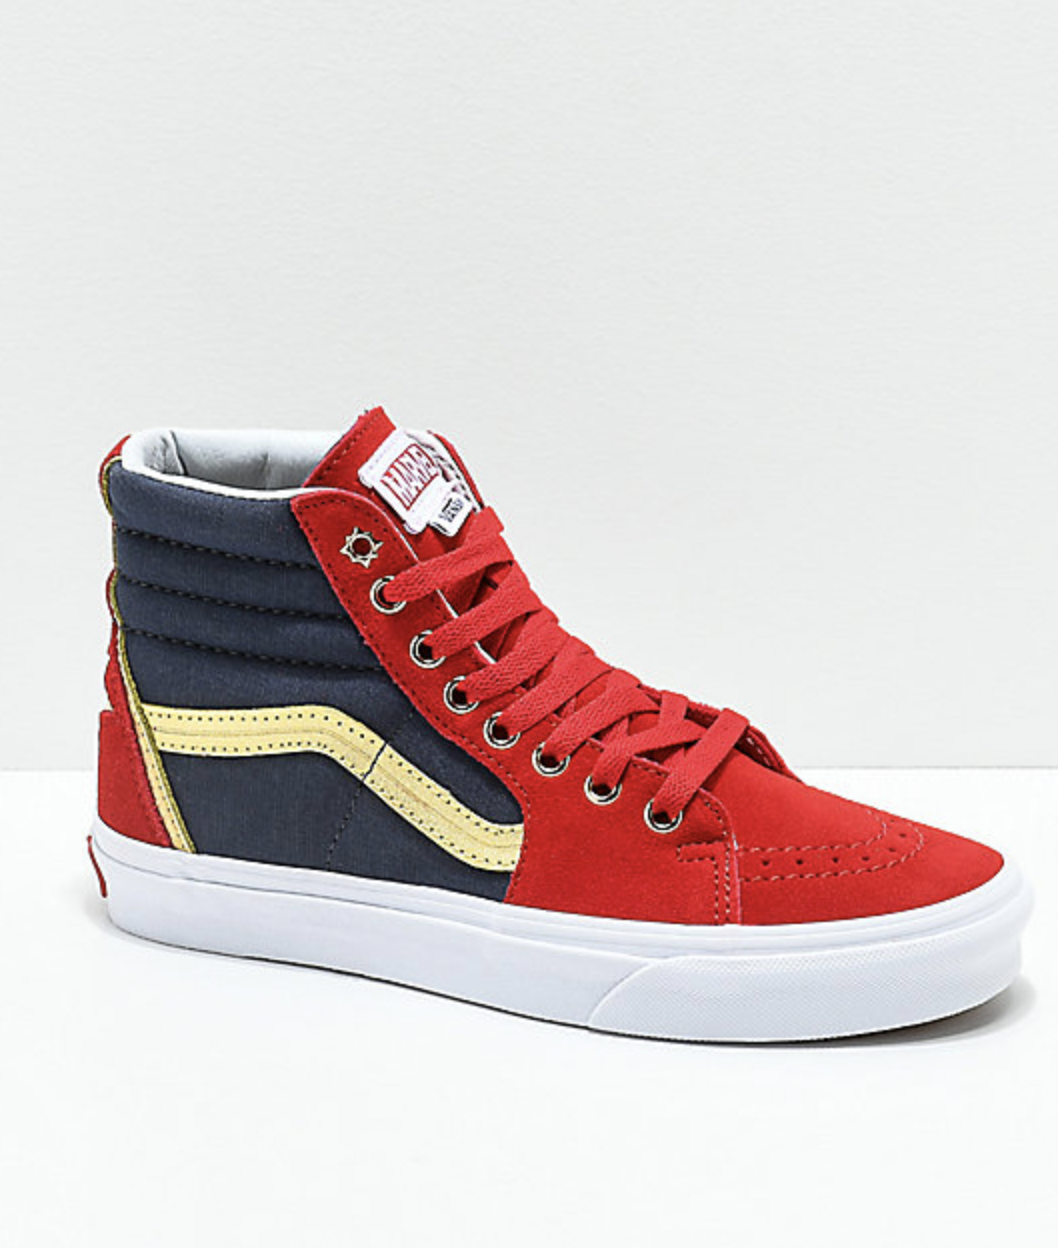 83c593fa50 Details about NEW Vans x Marvel Sk8-Hi Captain Marvel Red